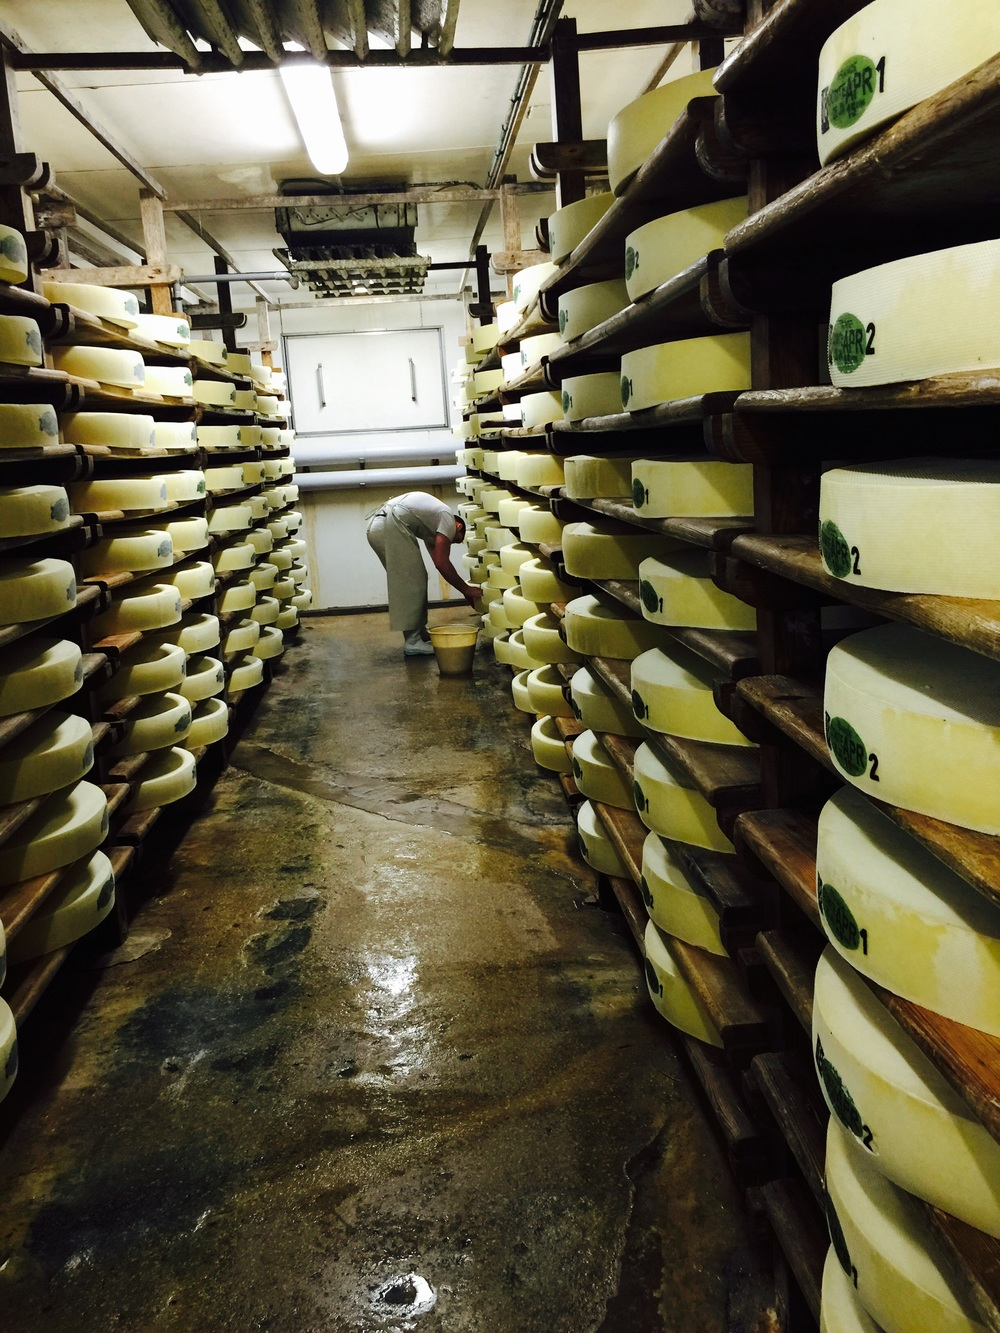 Affineur performing the daily flipping and cleaning of the 80 pound wheels of Comté.